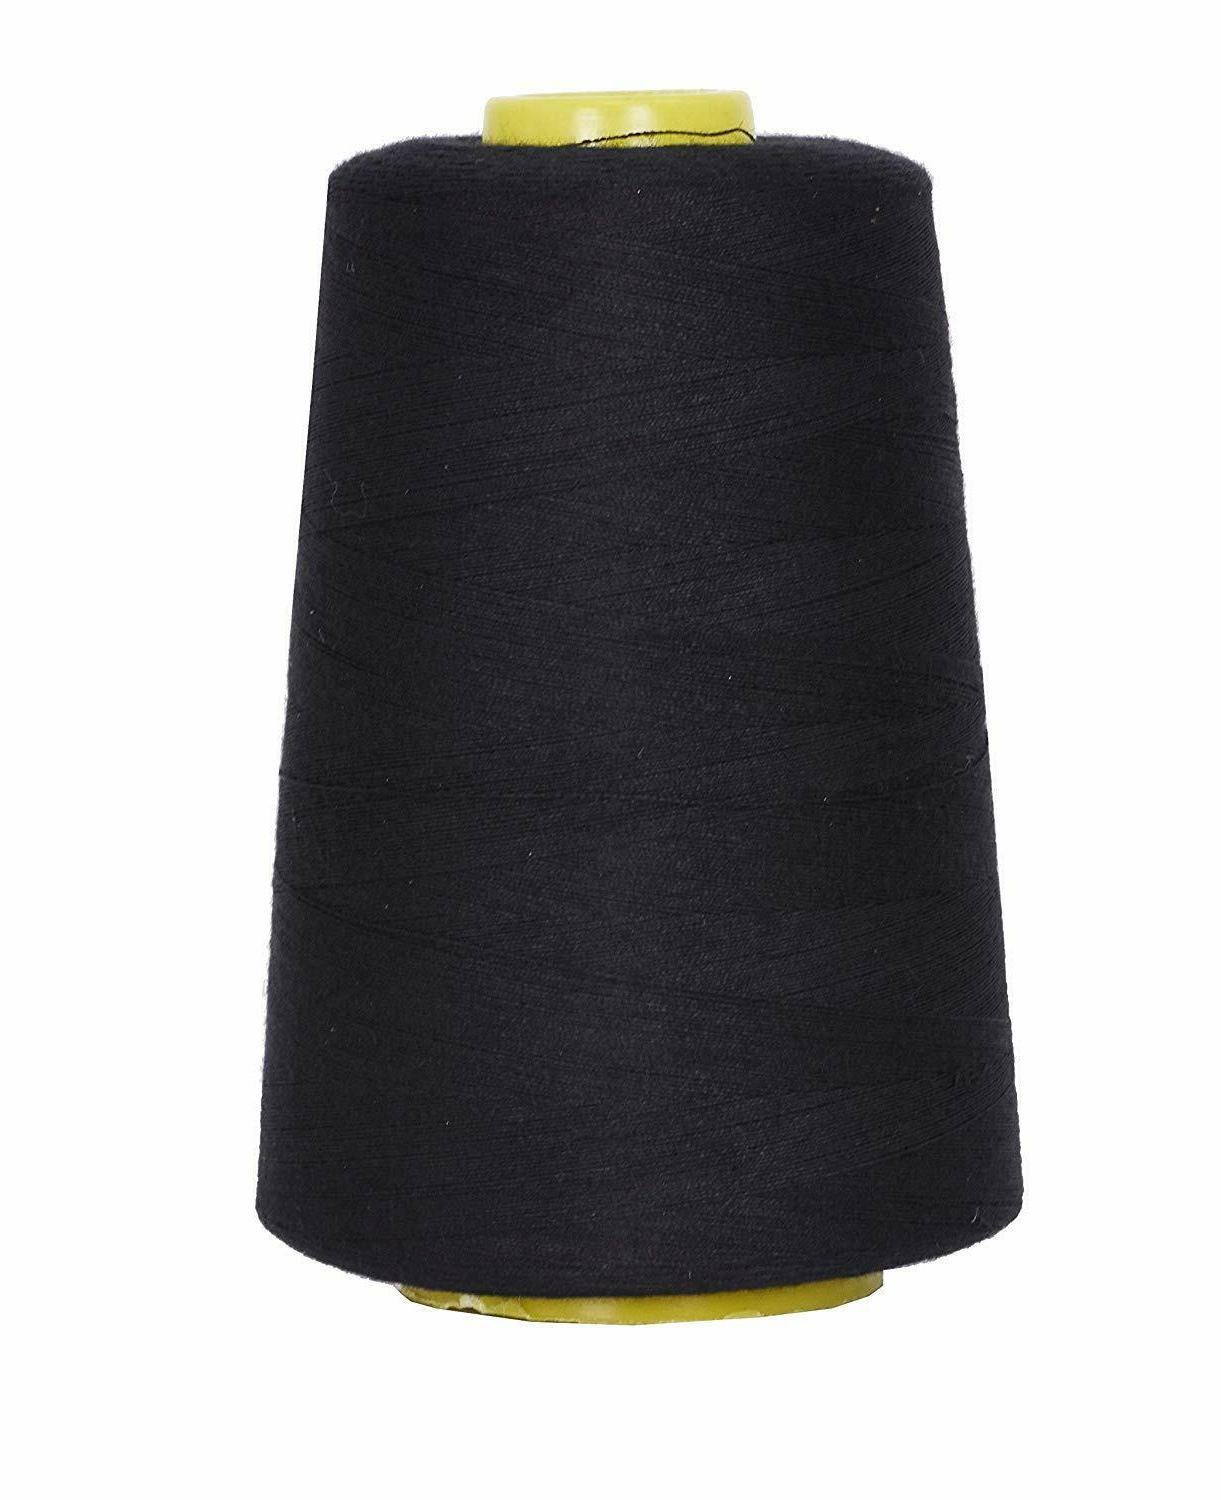 4 Sewing Thread Overlock Quilting Sewing